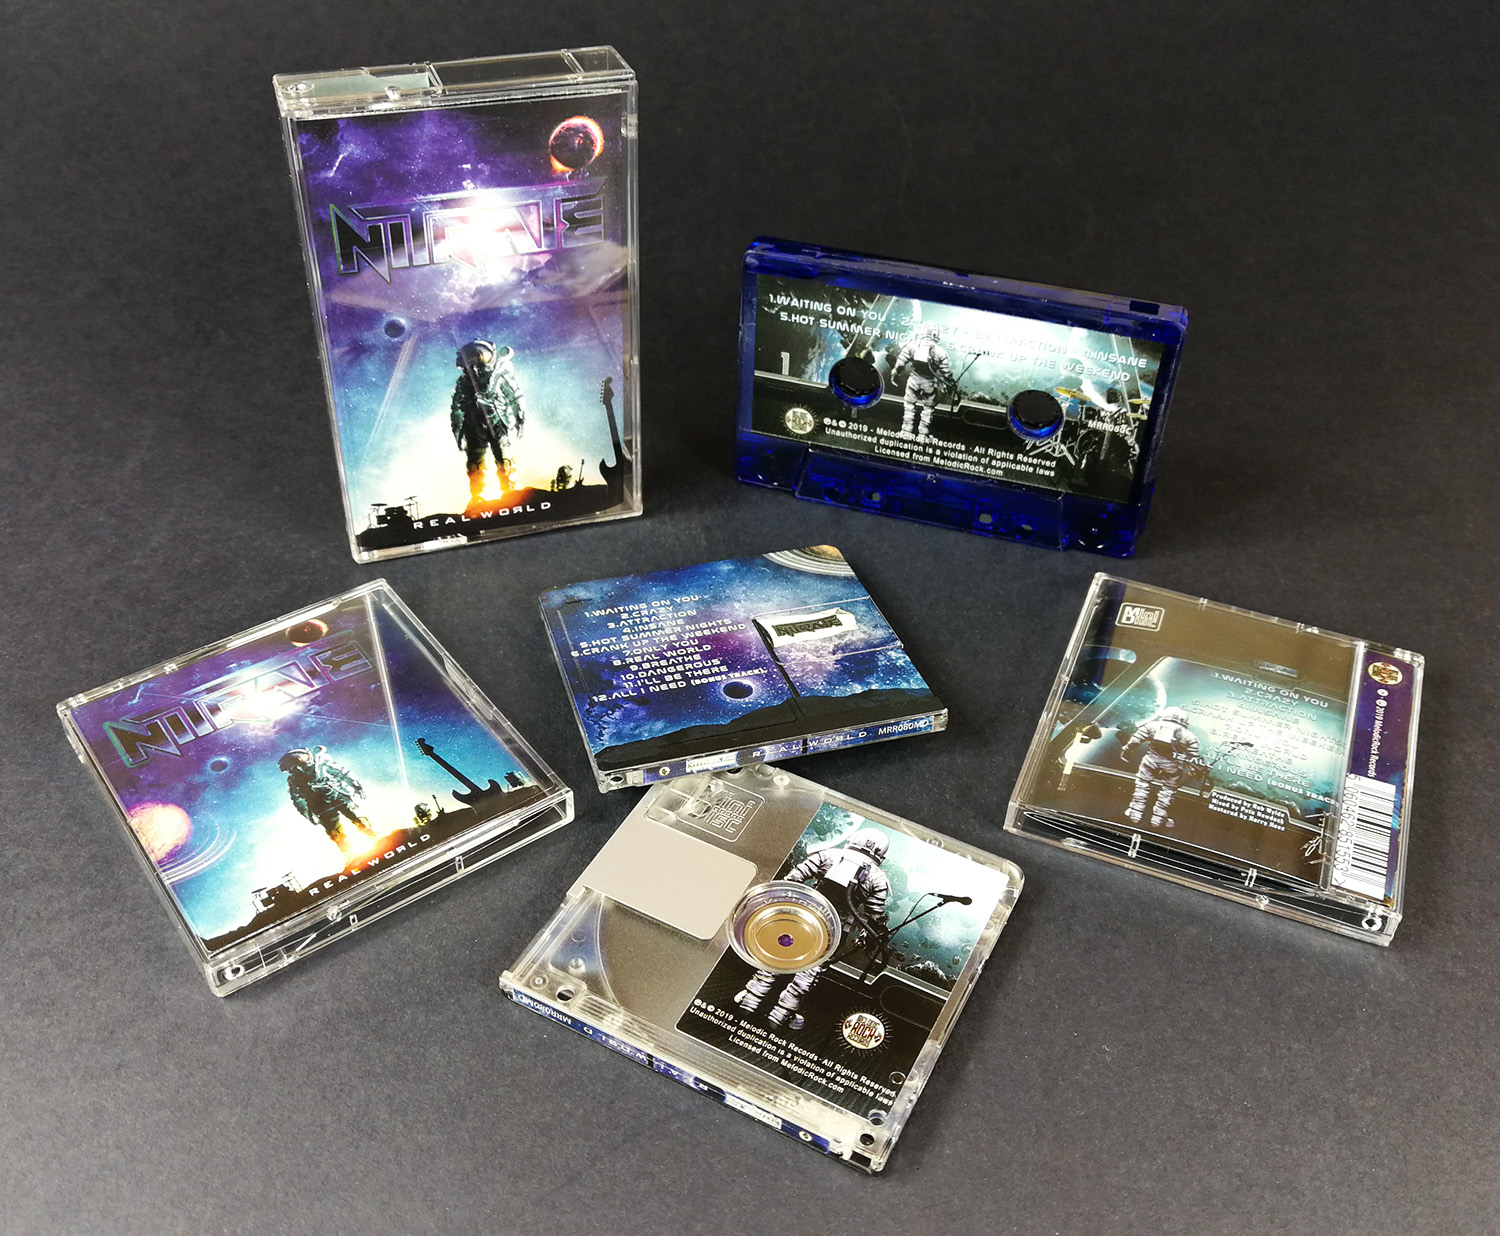 Transparent blue cassette tapes and matching MiniDisc sets